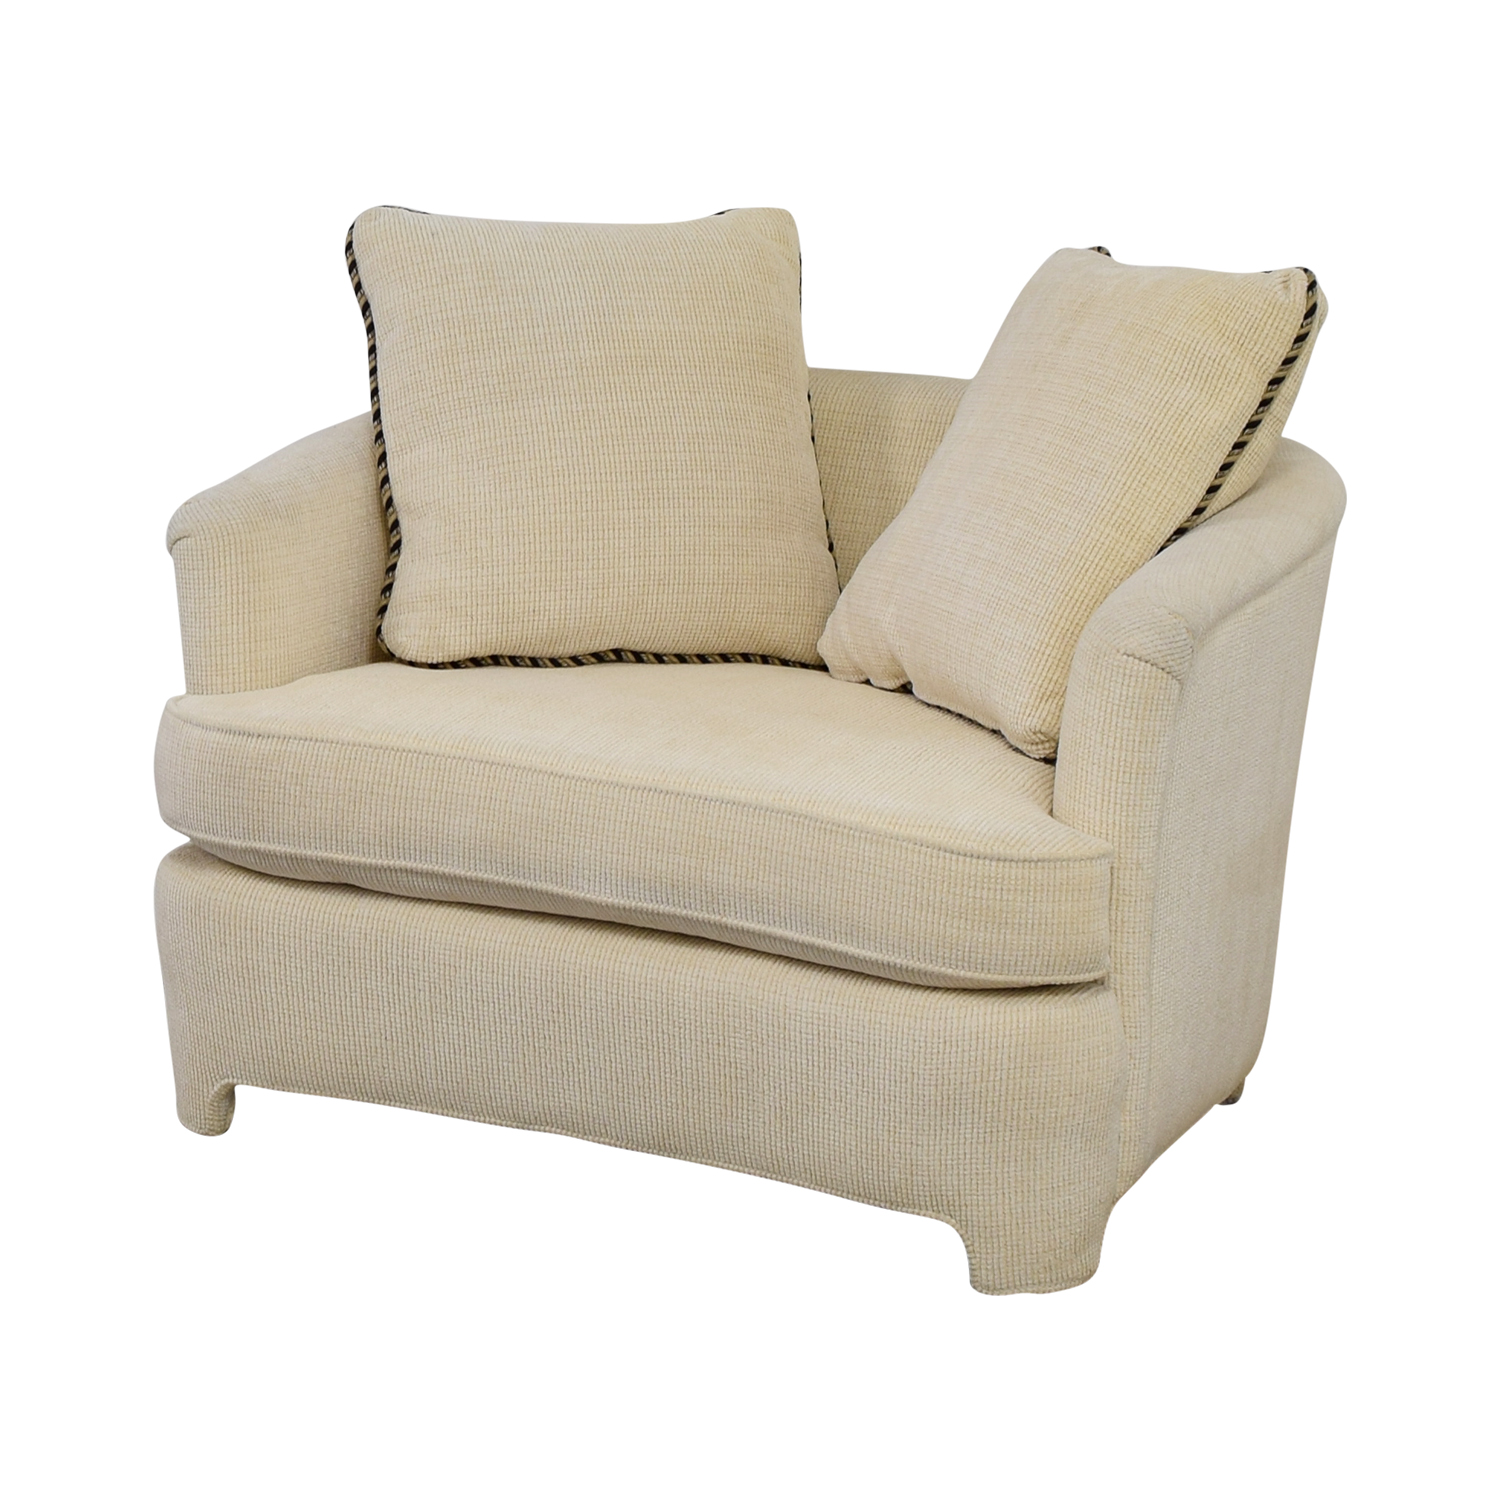 Accent Chairs For Sale 90 Off Off White Accent Chair With Pillows Chairs